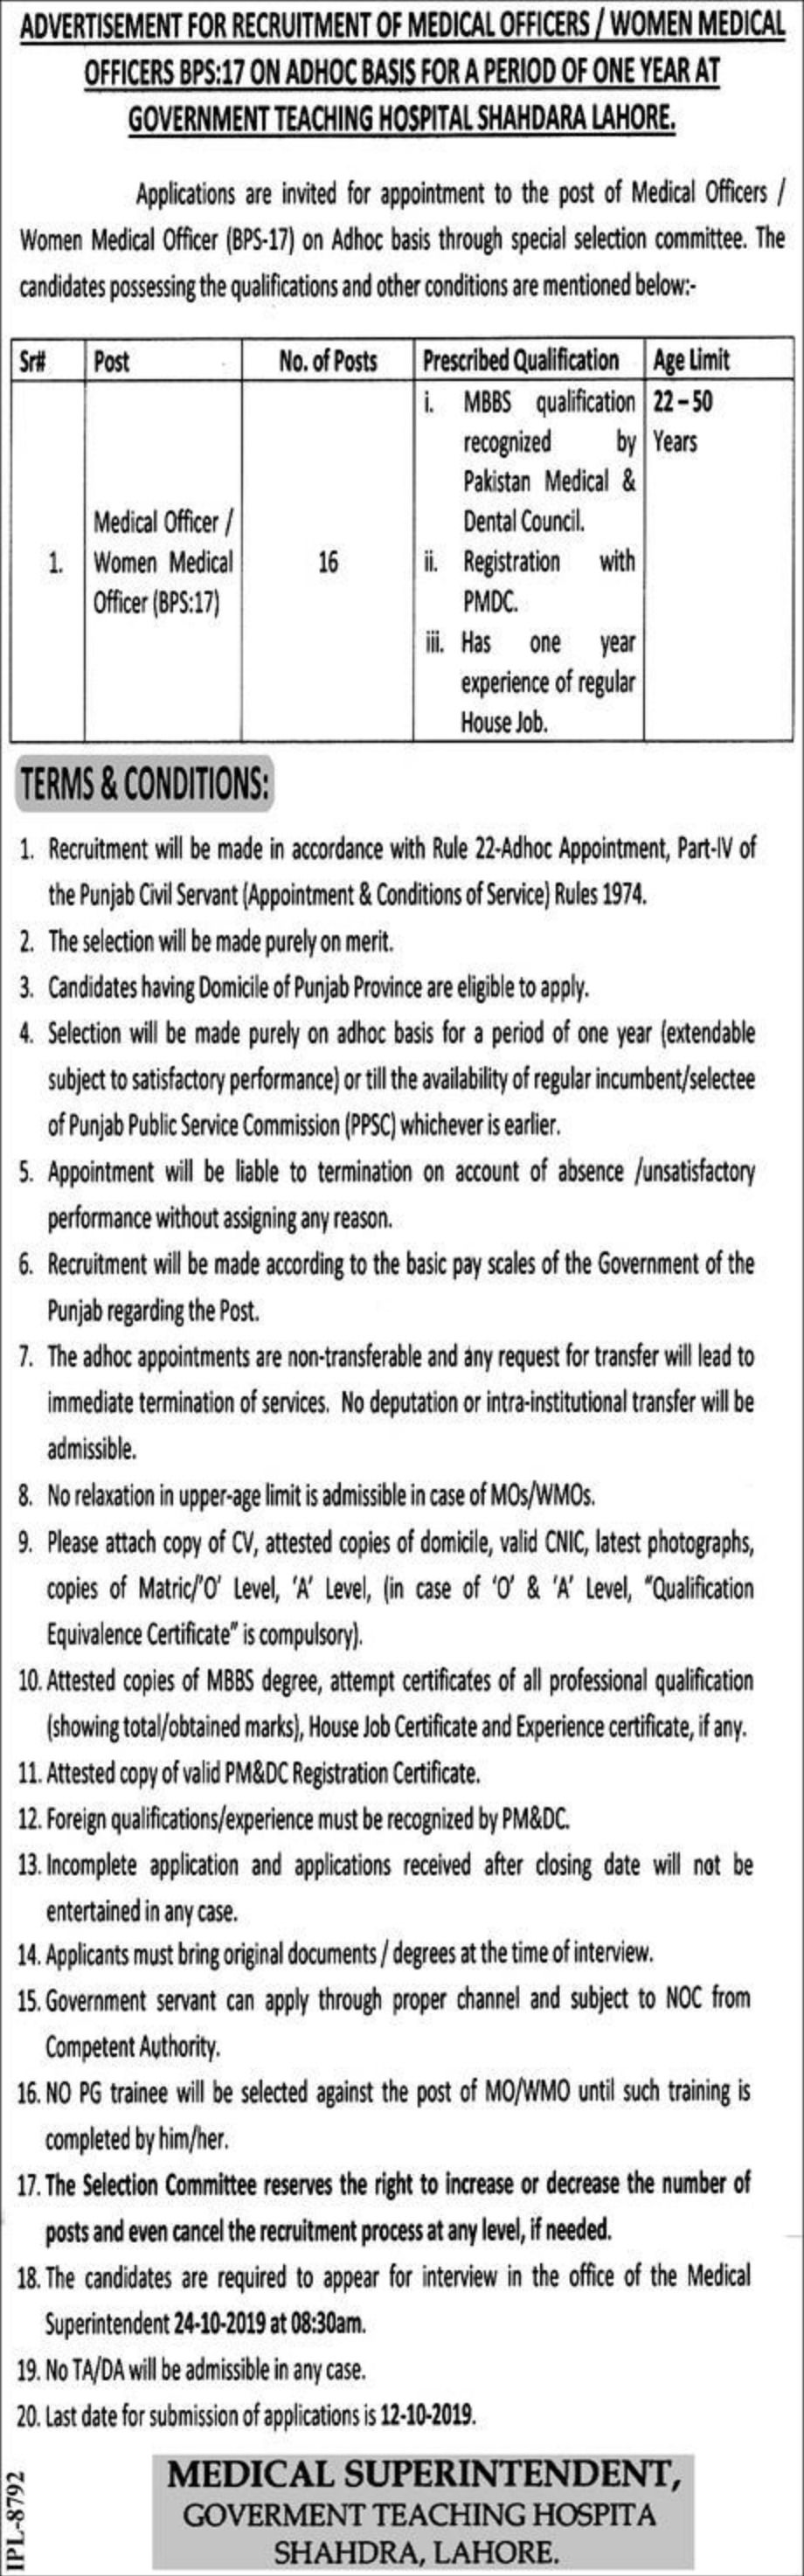 Government Teaching Hospital Shahdara Lahore Jobs 2019